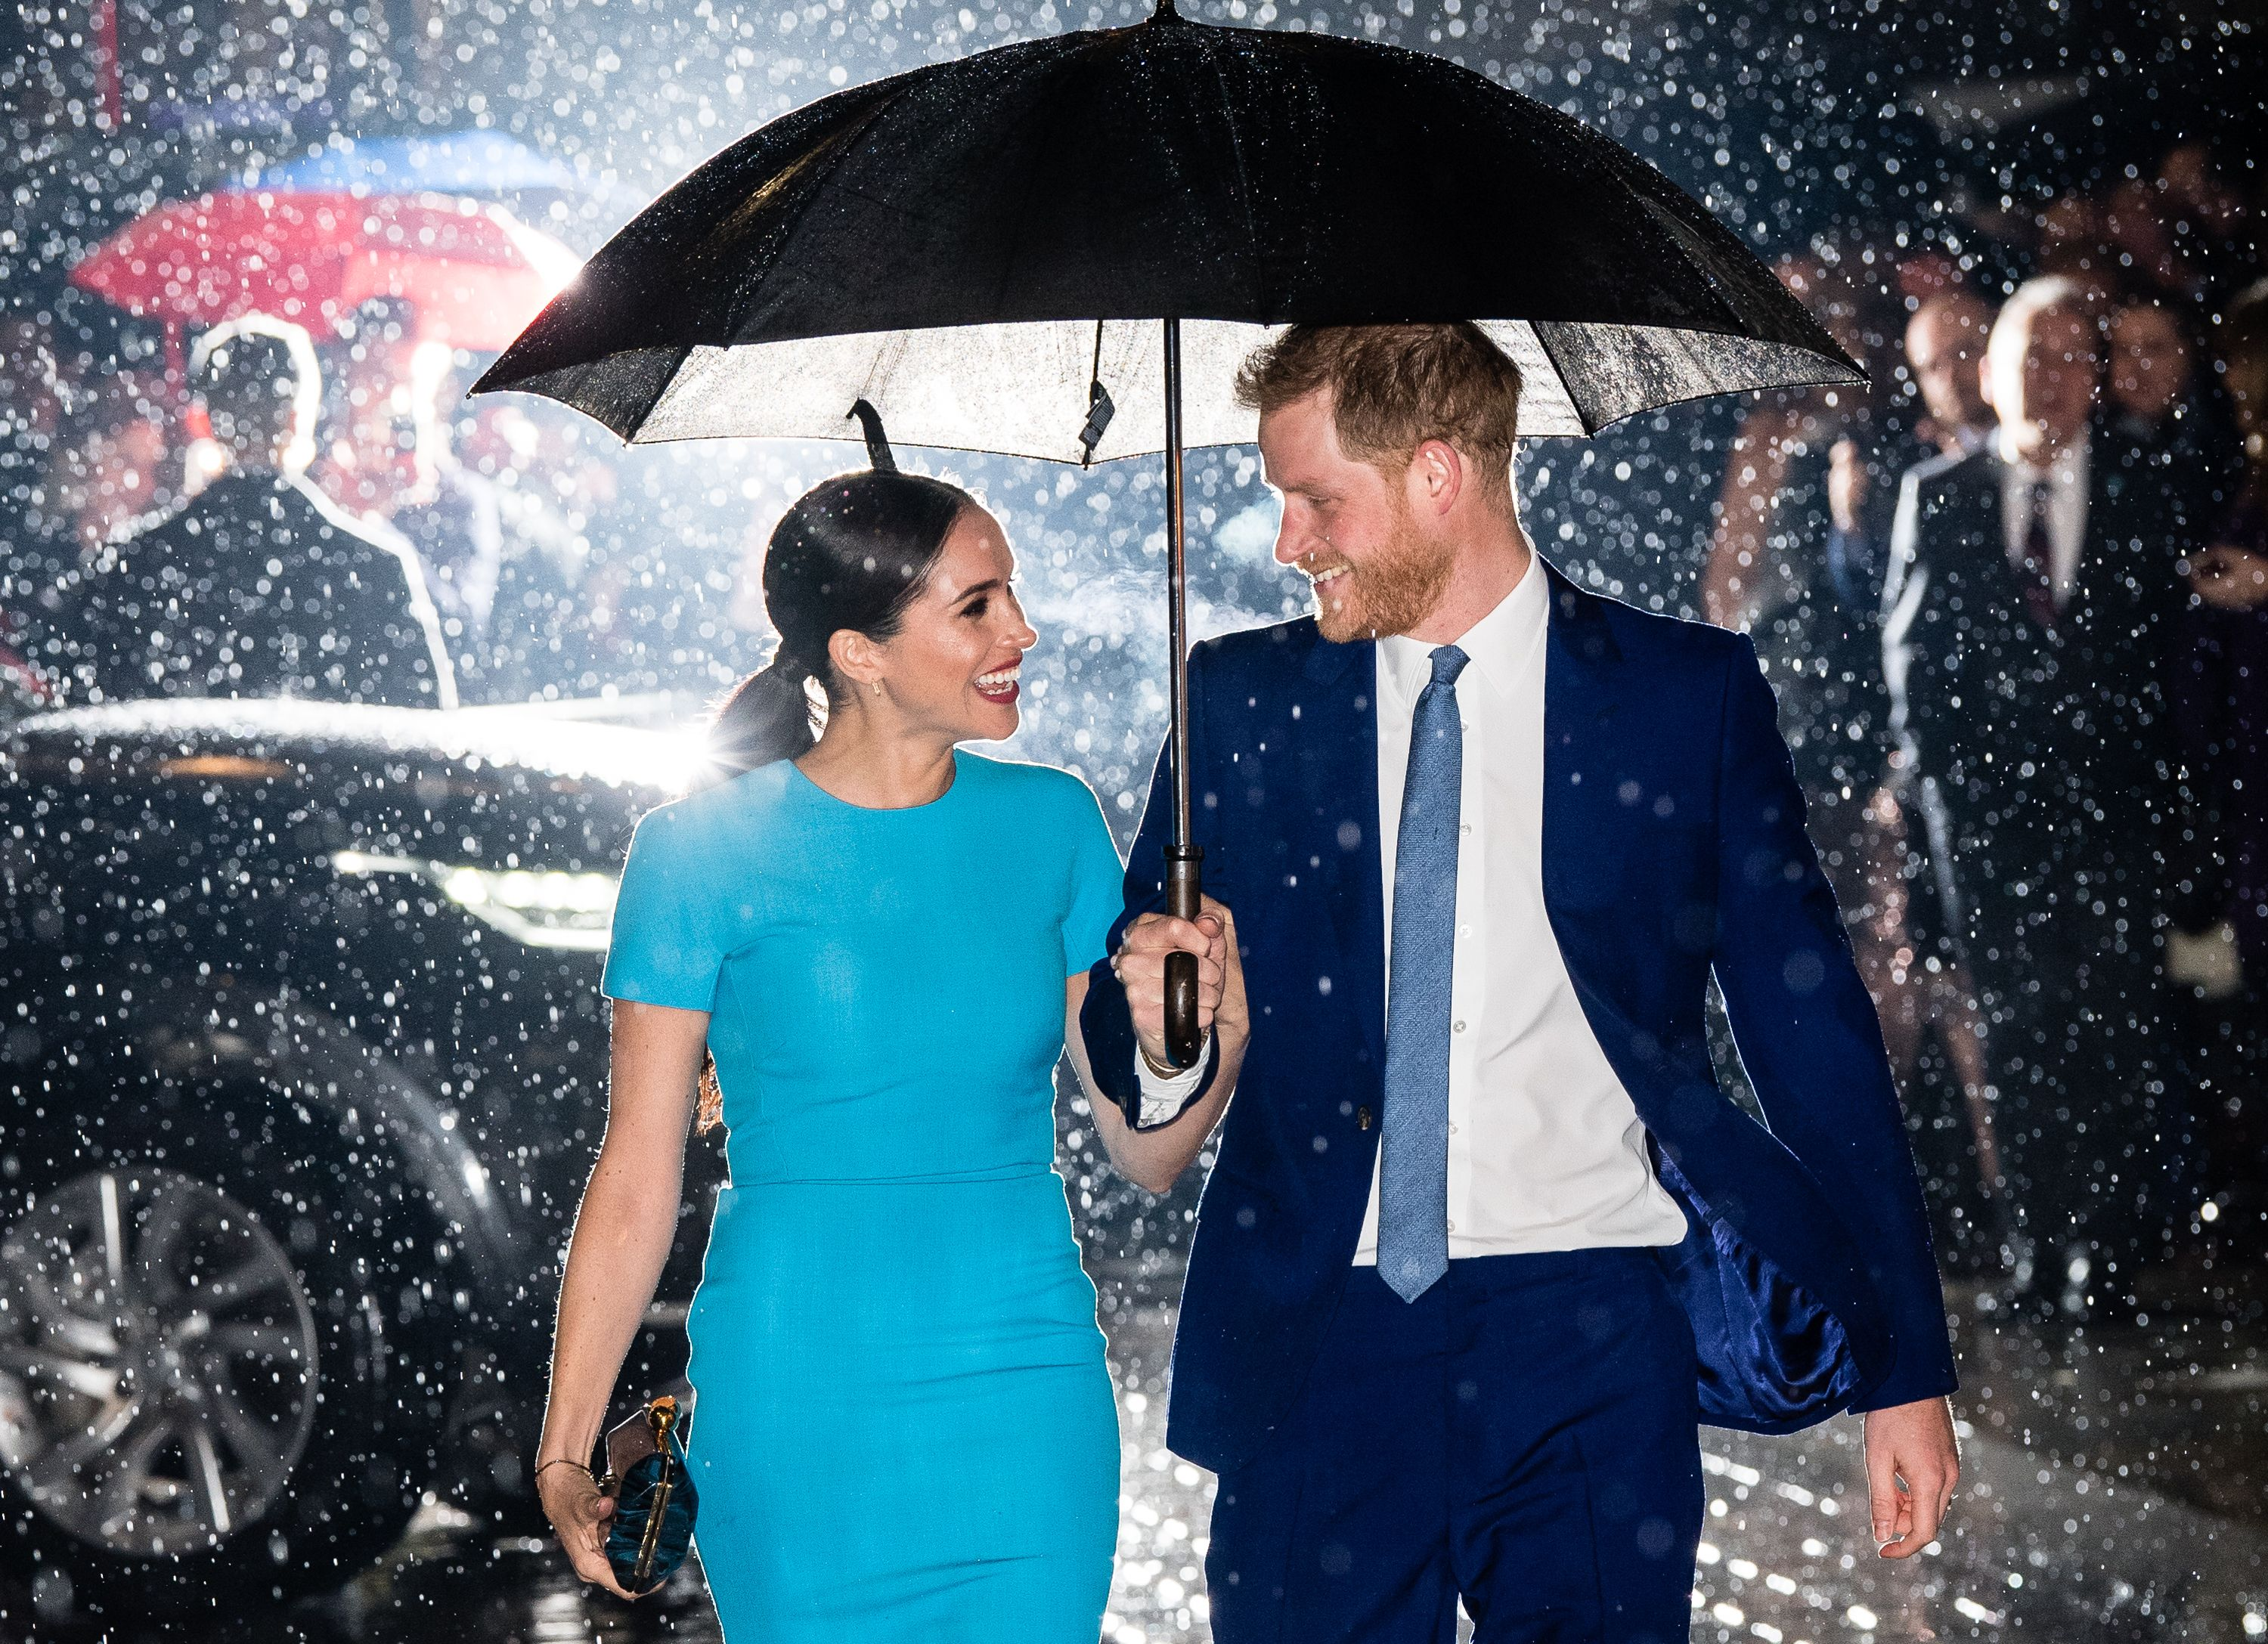 Meghan Markle and Prince Harry smile at each other under an umbrella in the rain